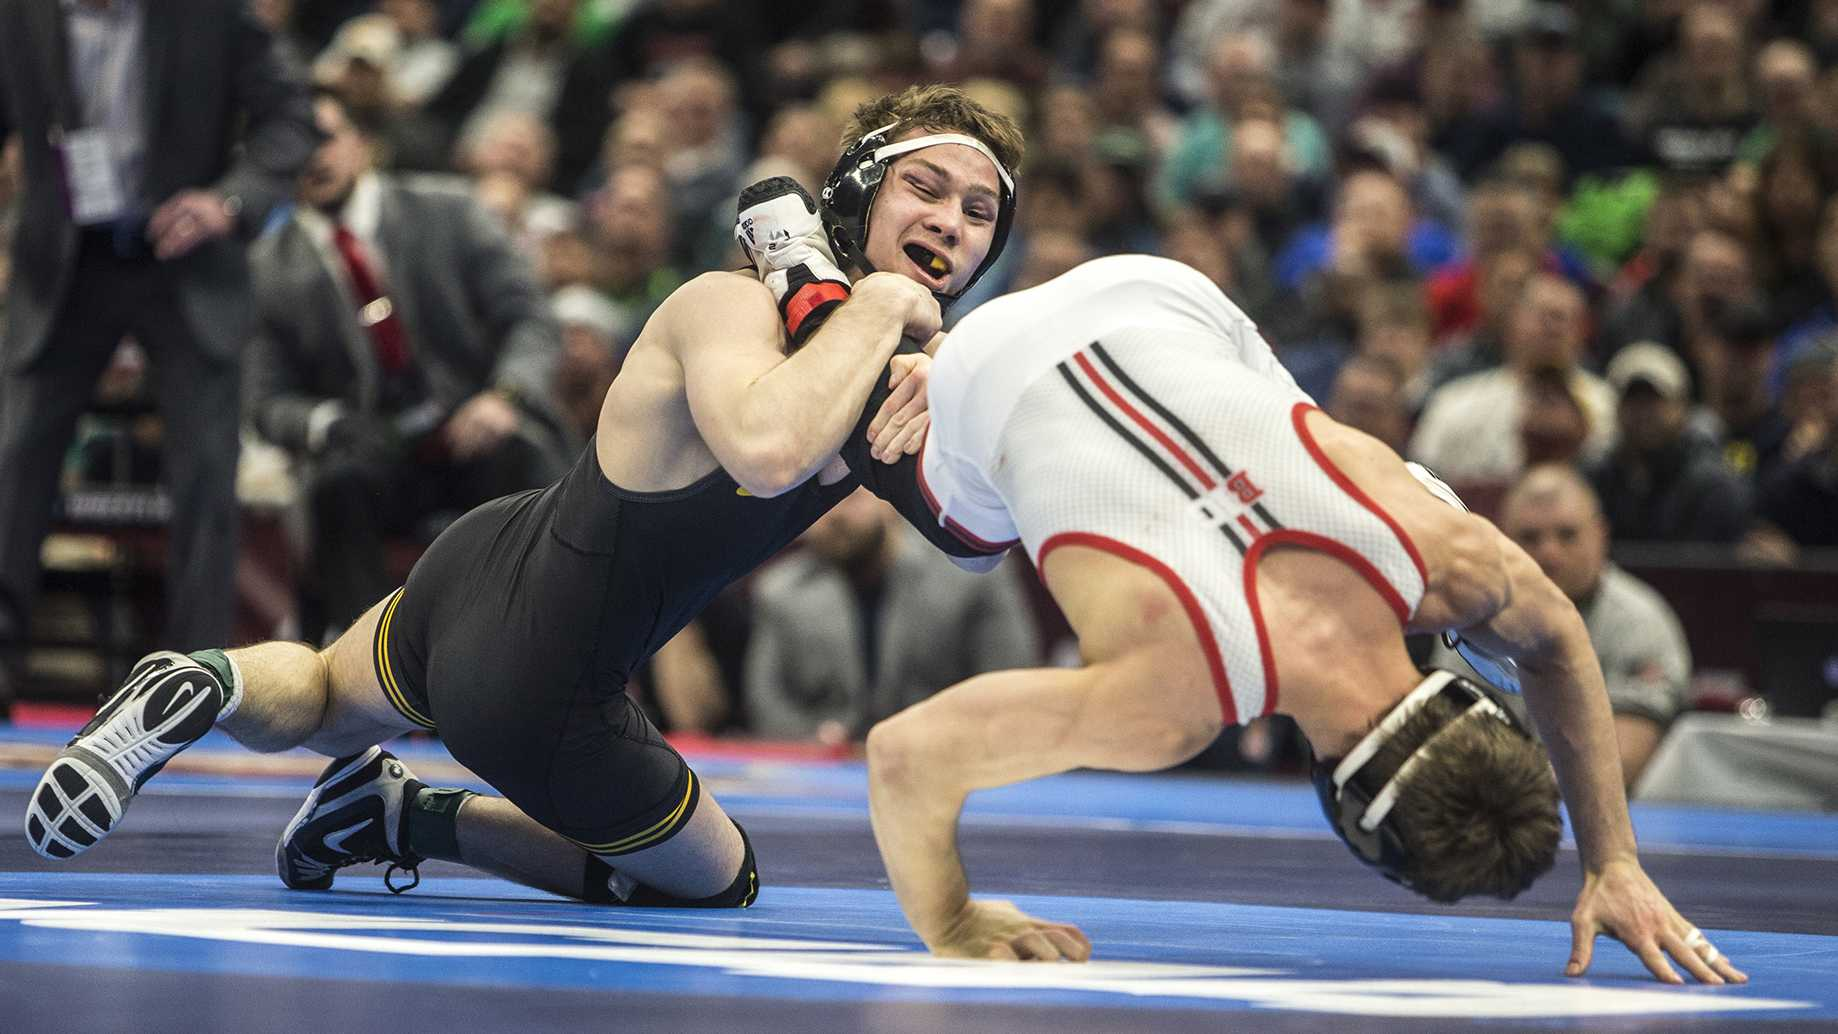 Iowa's Spencer Lee competes against Rutgers's Nick Suriano in the 125-pound final bout of the NCAA Wrestling Championships in Cleveland, OH. Lee defeated Suriano by decision, 5-1, placing first in the tournament. This is Lee's first national title. (Ben Allan Smith/The Daily Iowan)